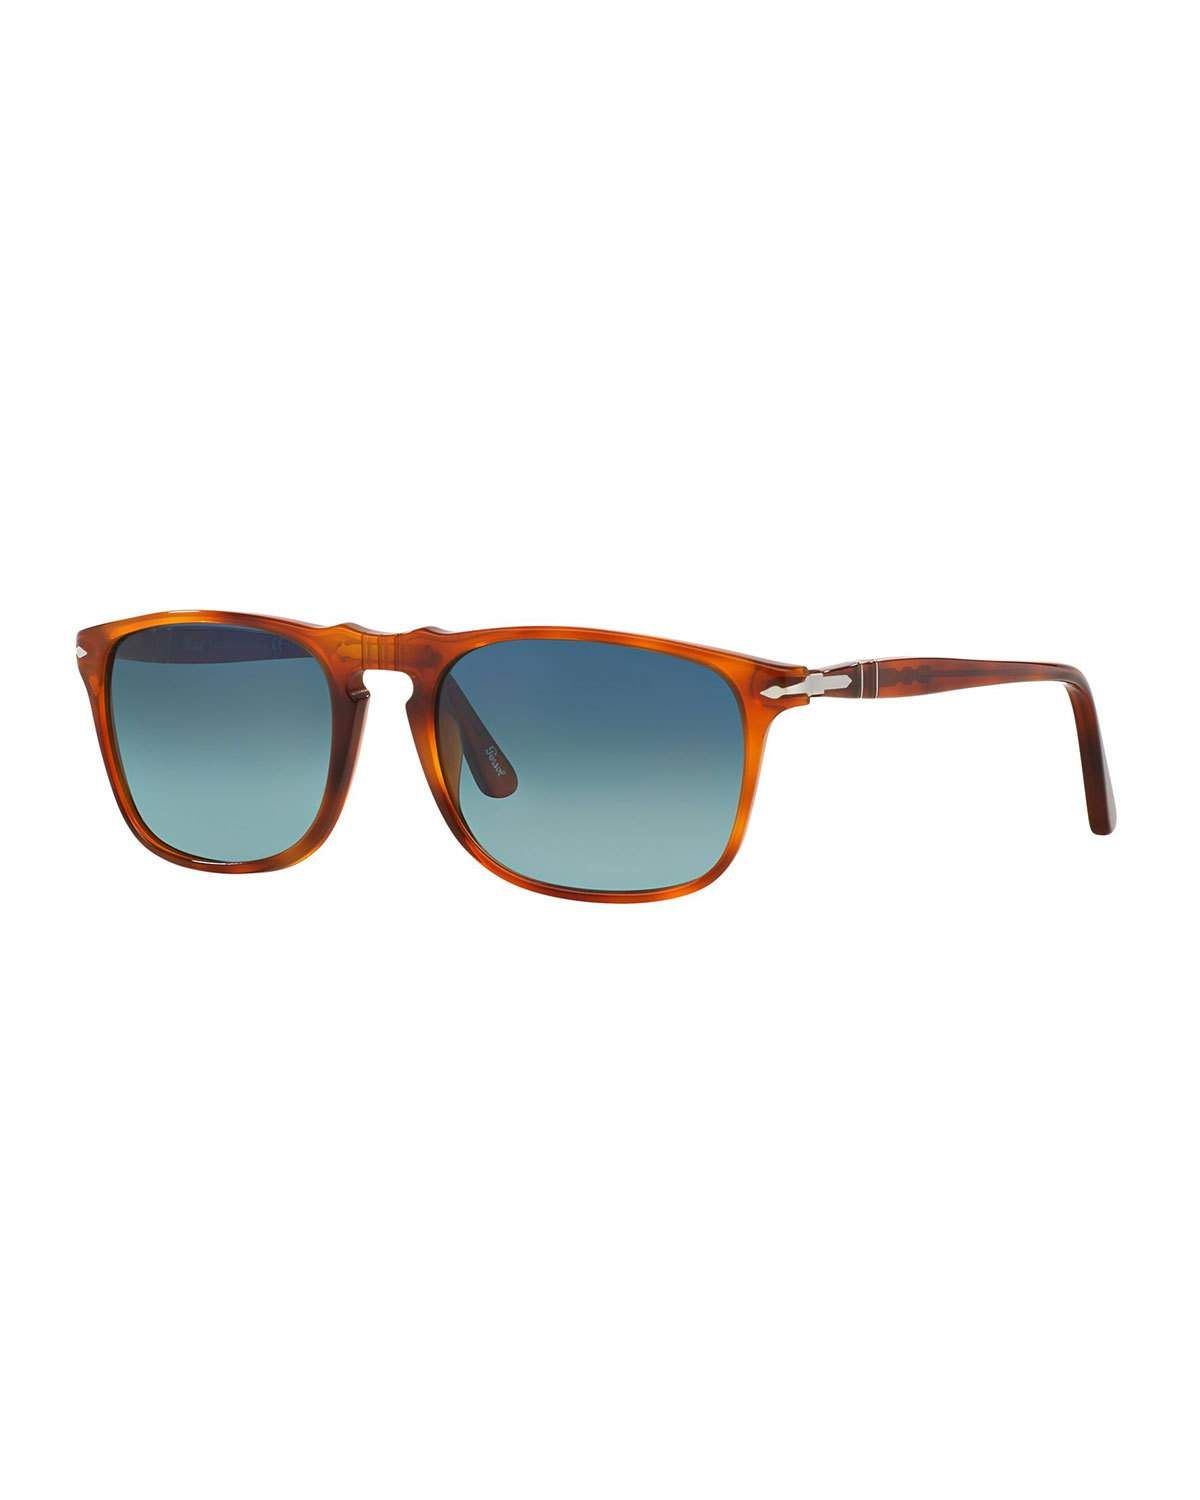 4e74a4f2fe1f PERSOL MEN'S FLAT-TOP SQUARE SUNGLASSES - GRADIENT POLARIZED. #persol